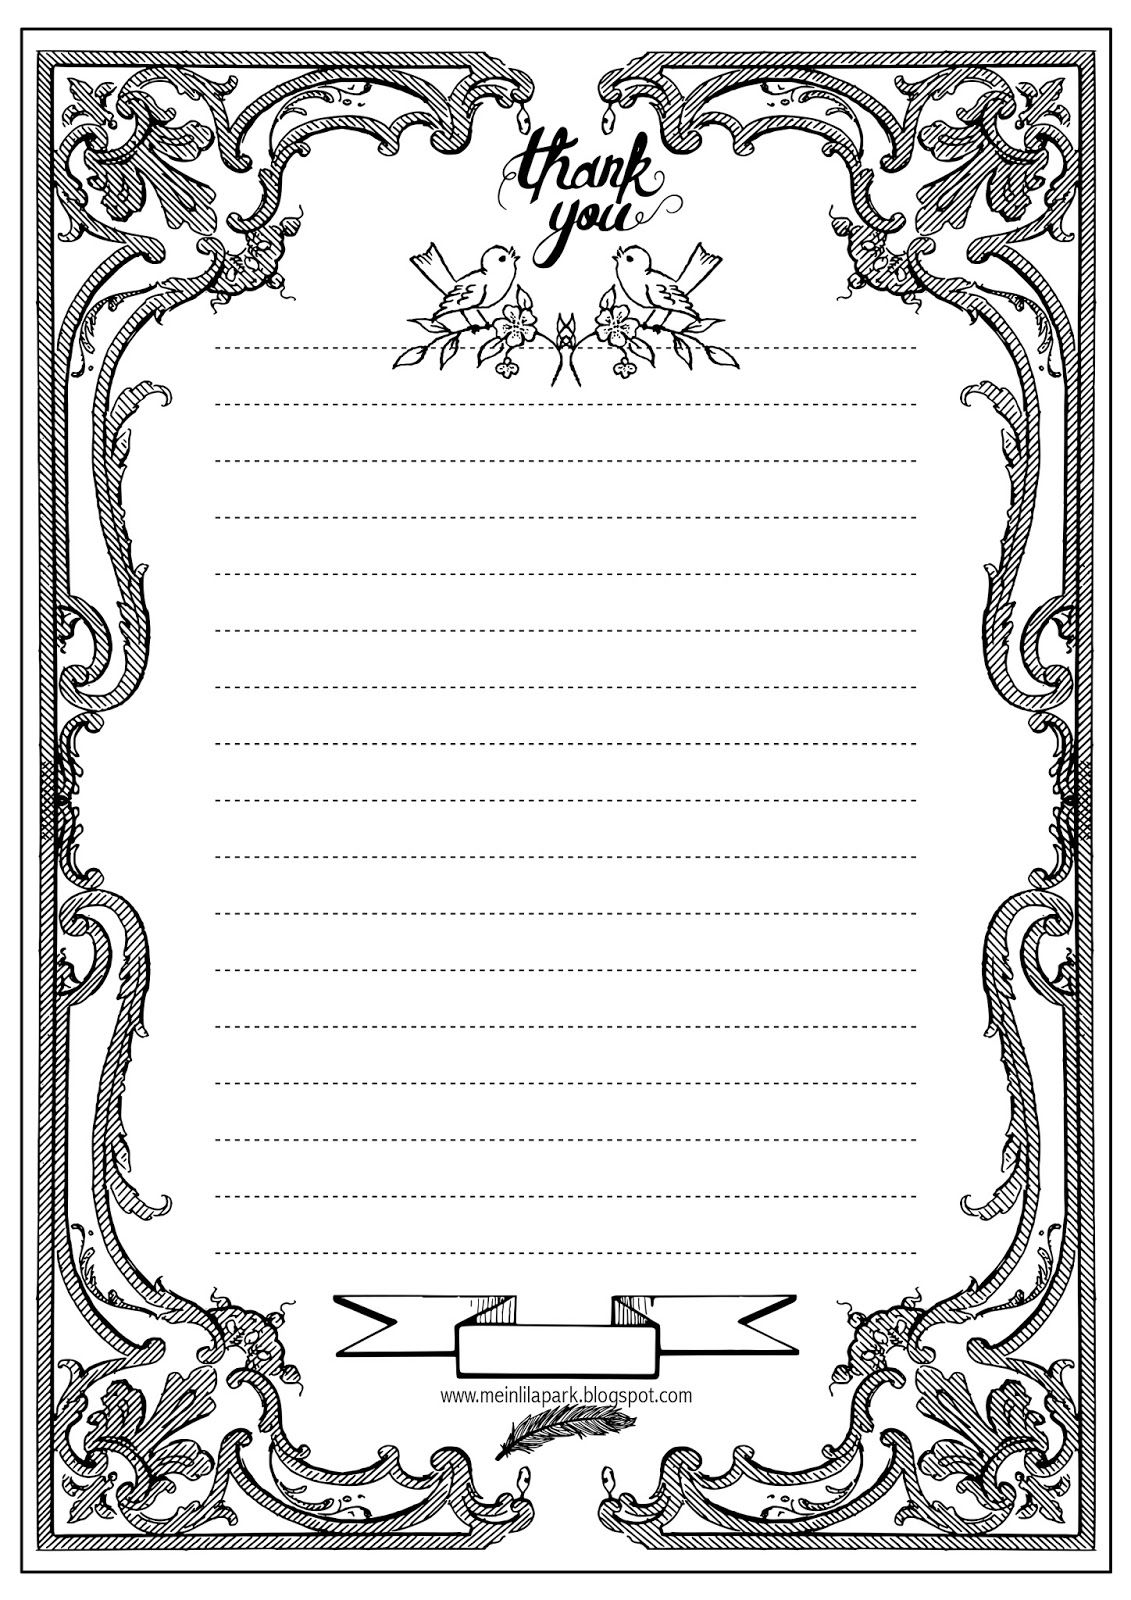 Free printable thank you writing